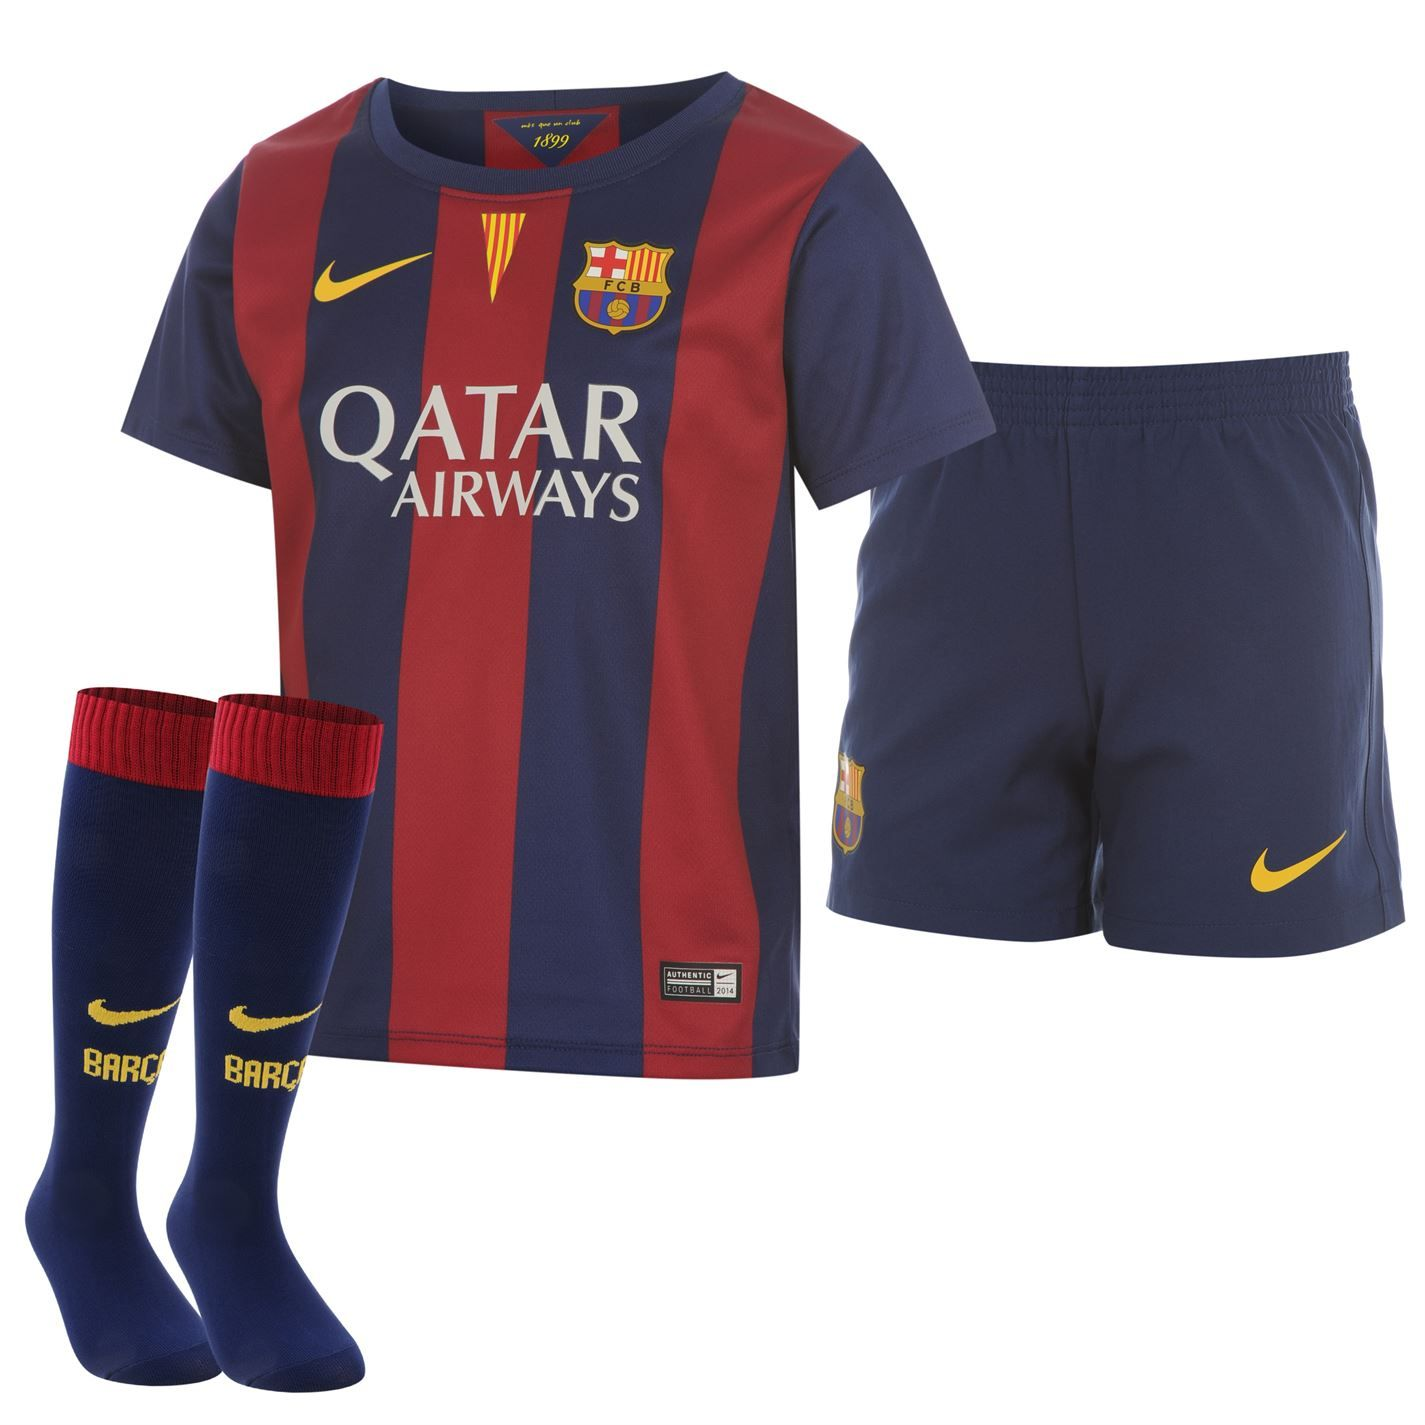 Nike | Nike FC Barcelona Home Kit 2014 2015 Mini | La Liga Football Shirts